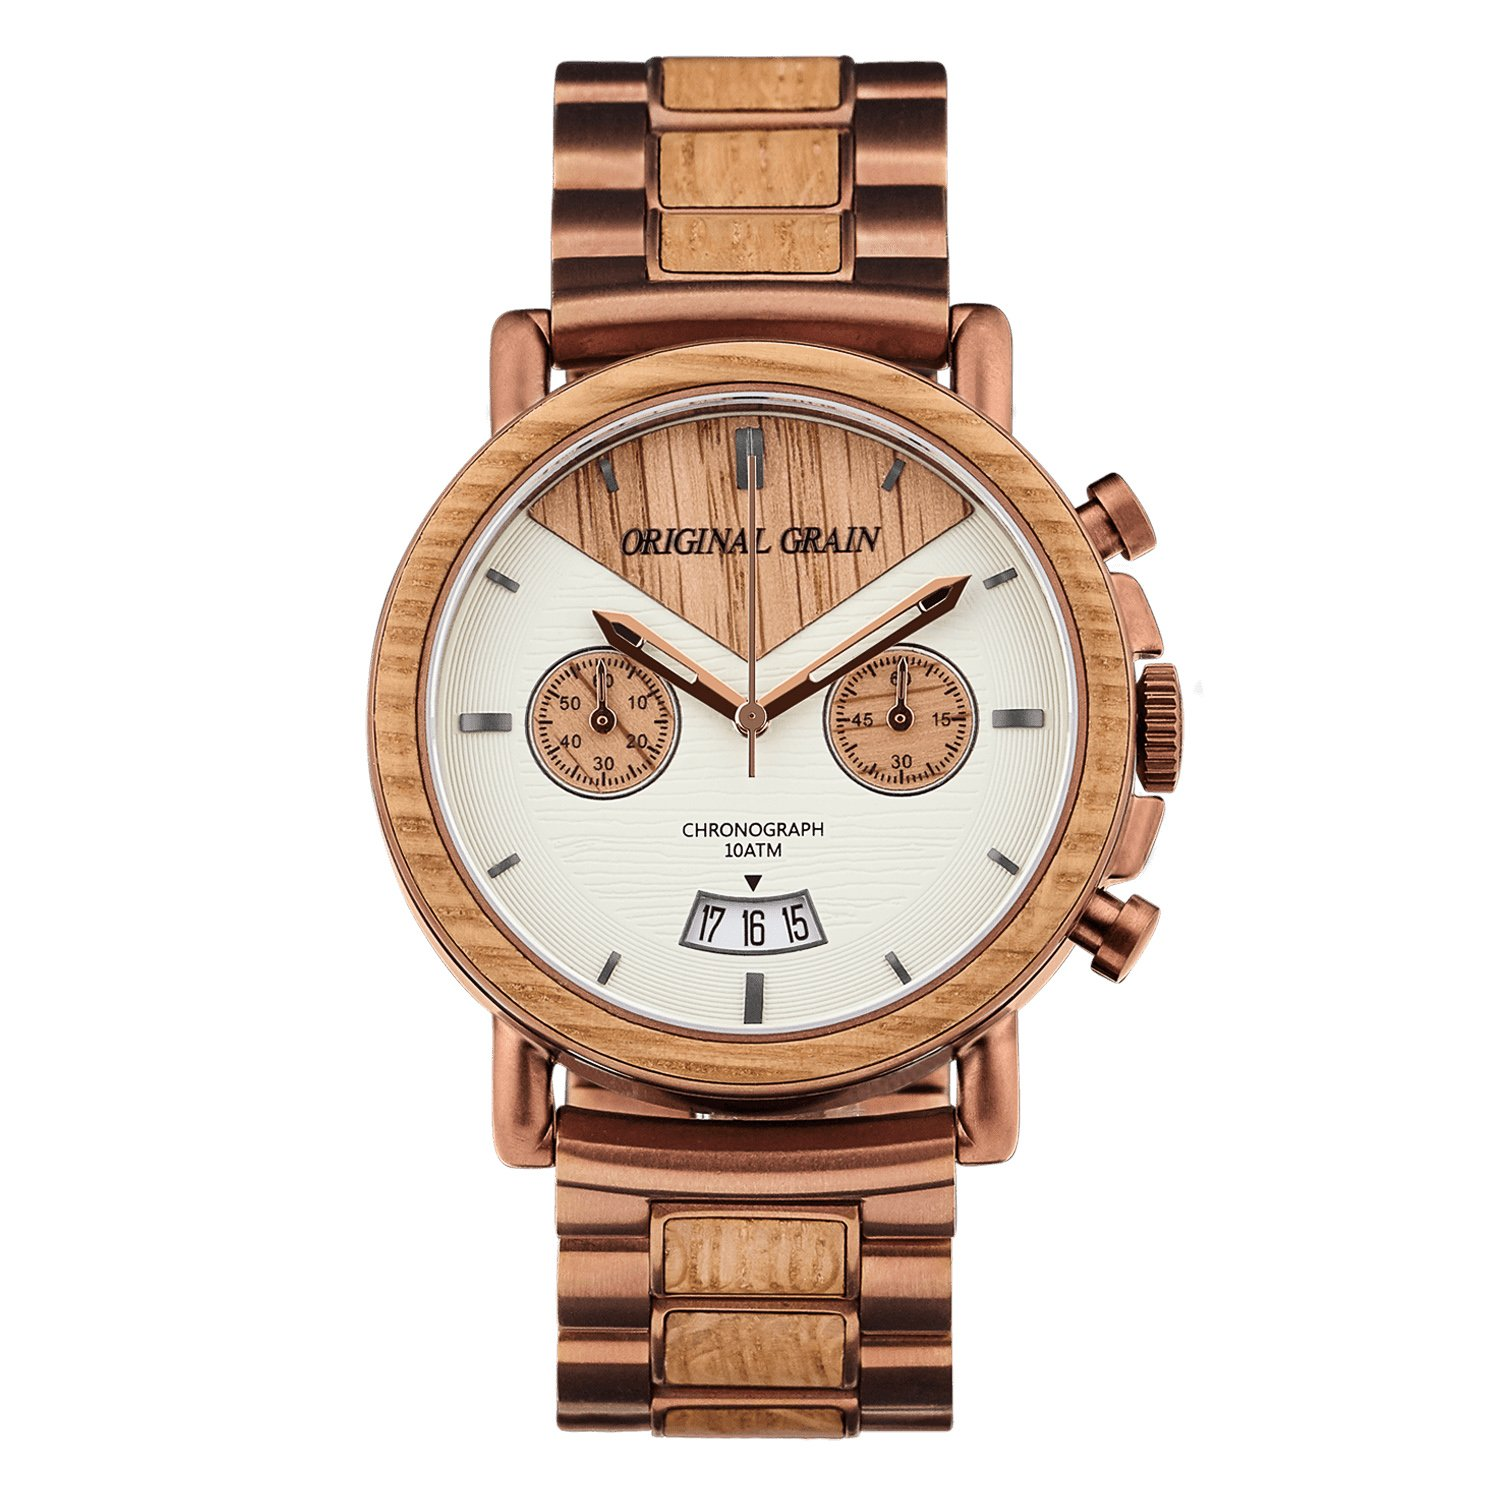 Original Grain Wood Wrist Watch | Alterra Collection 44MM Chronograph Watch | Wood And Stainless Steel Watch Band | Japanese Quartz Movement | Whiskey Barrel Wood